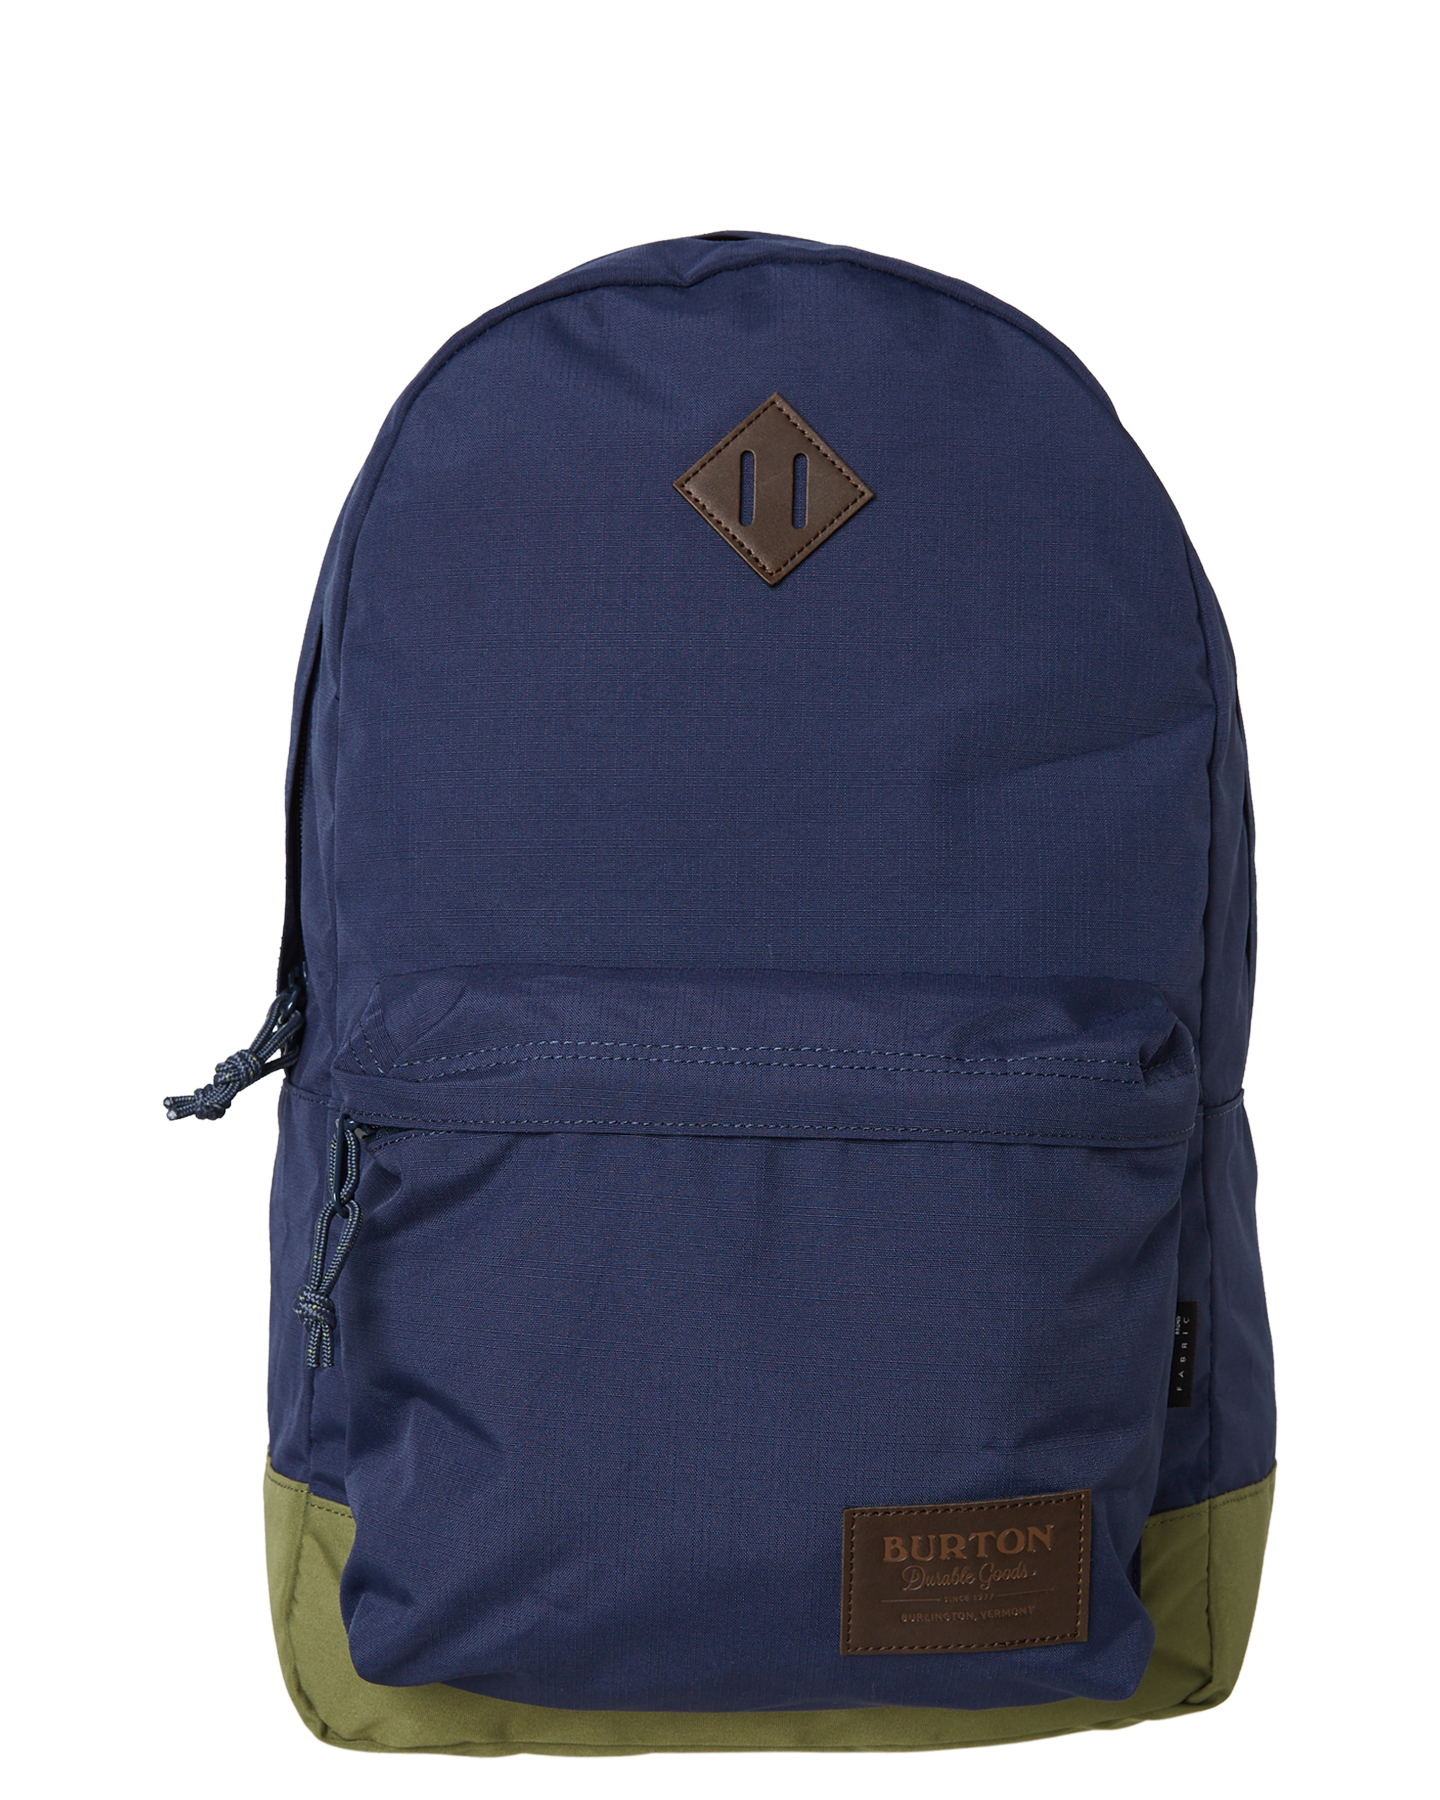 BUY Burton Kettle 20L Backpack Mood Indigo Mood Indigo   Australian ... 8cbe738d6c